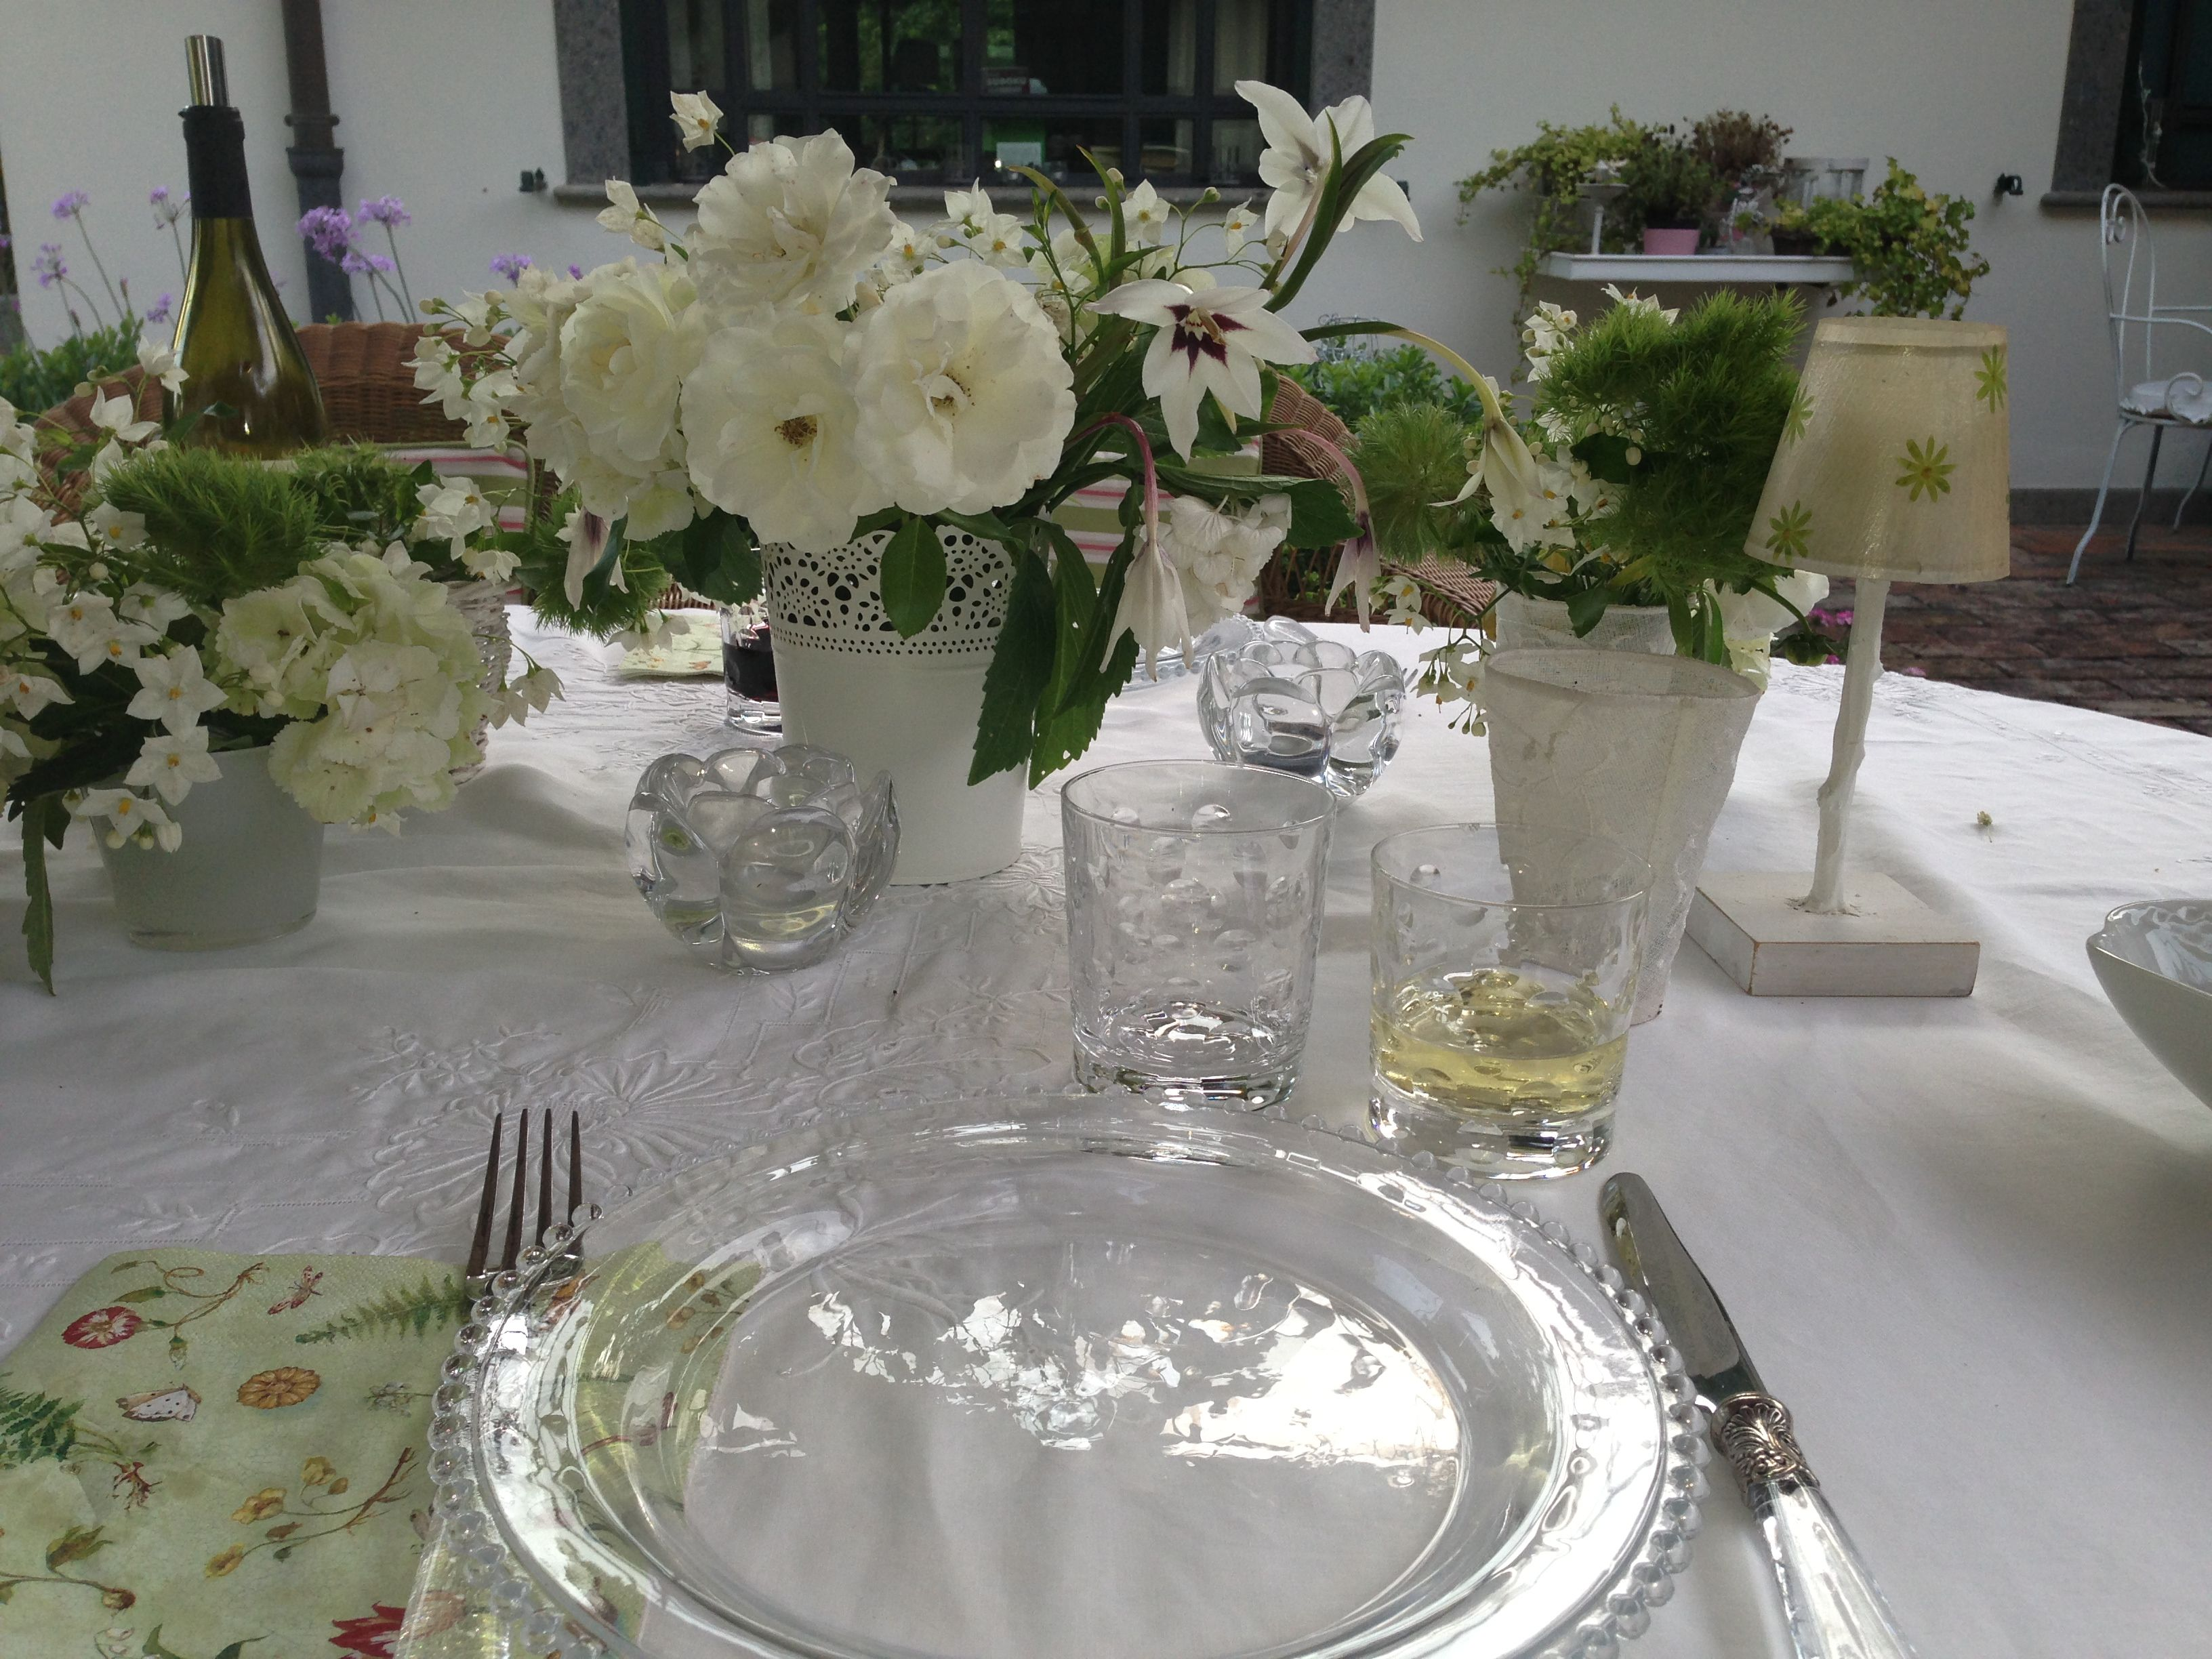 My white dining table